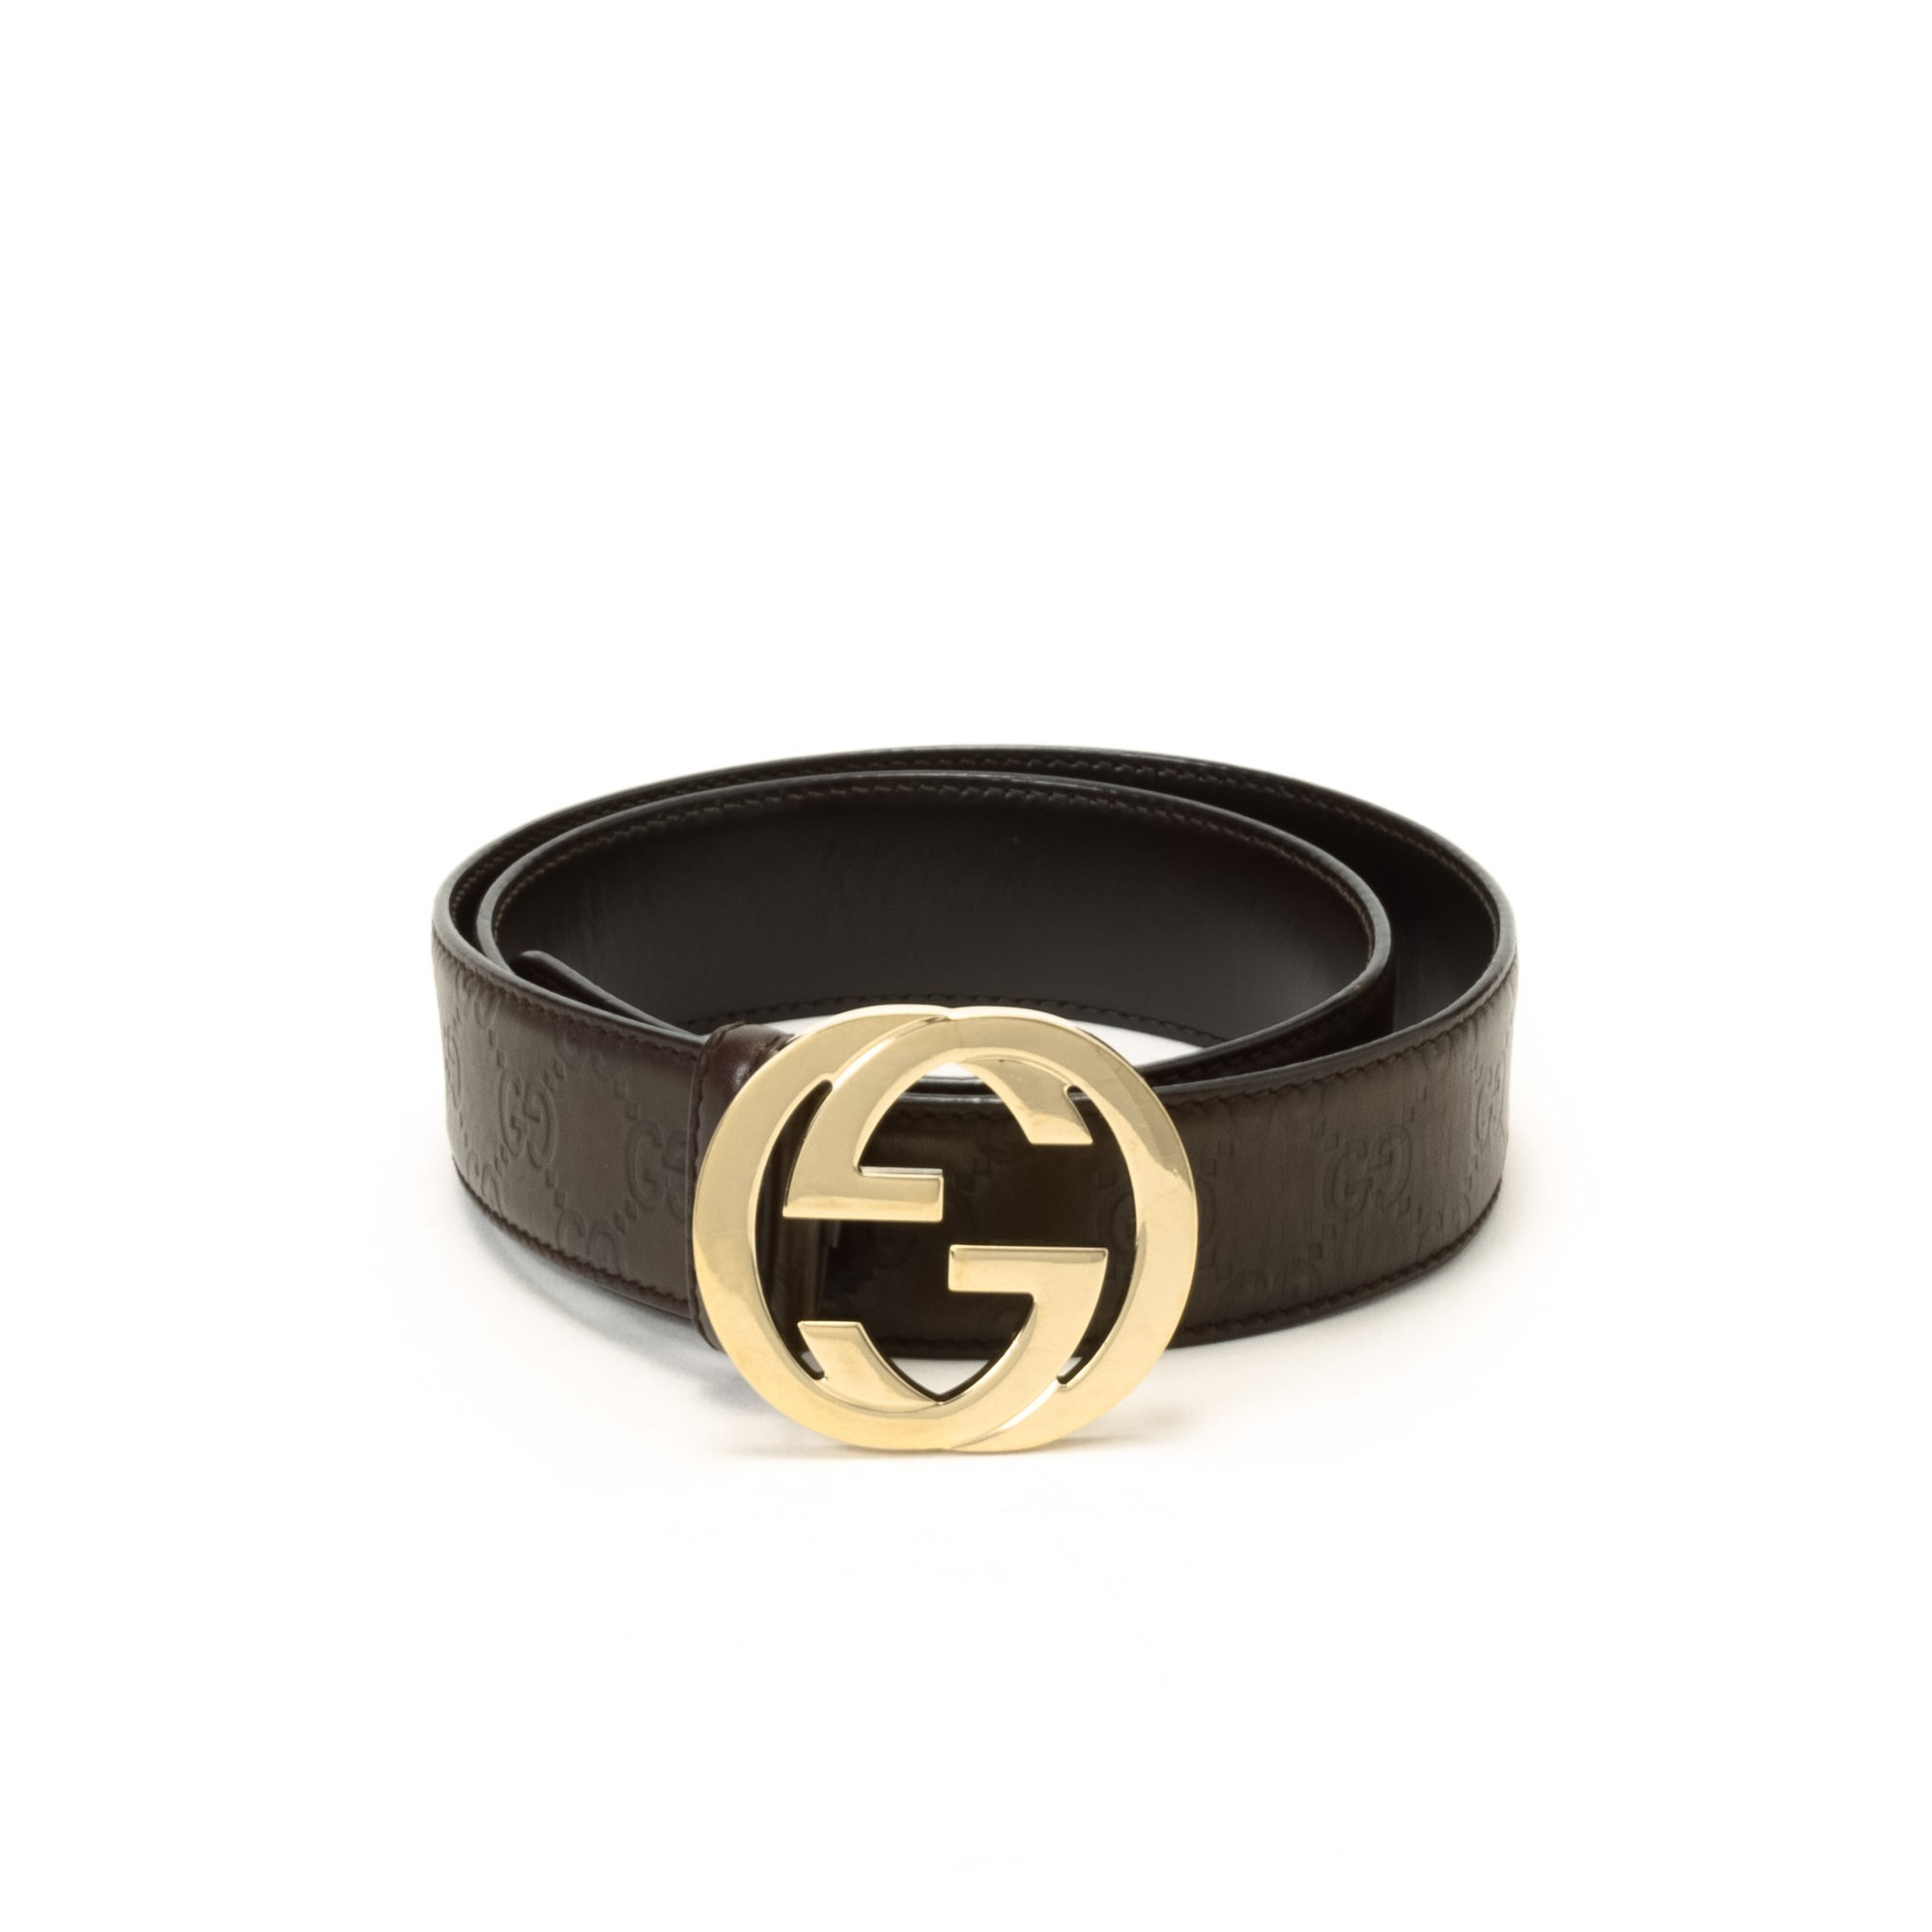 buy brown leather gucci belt at lxr co